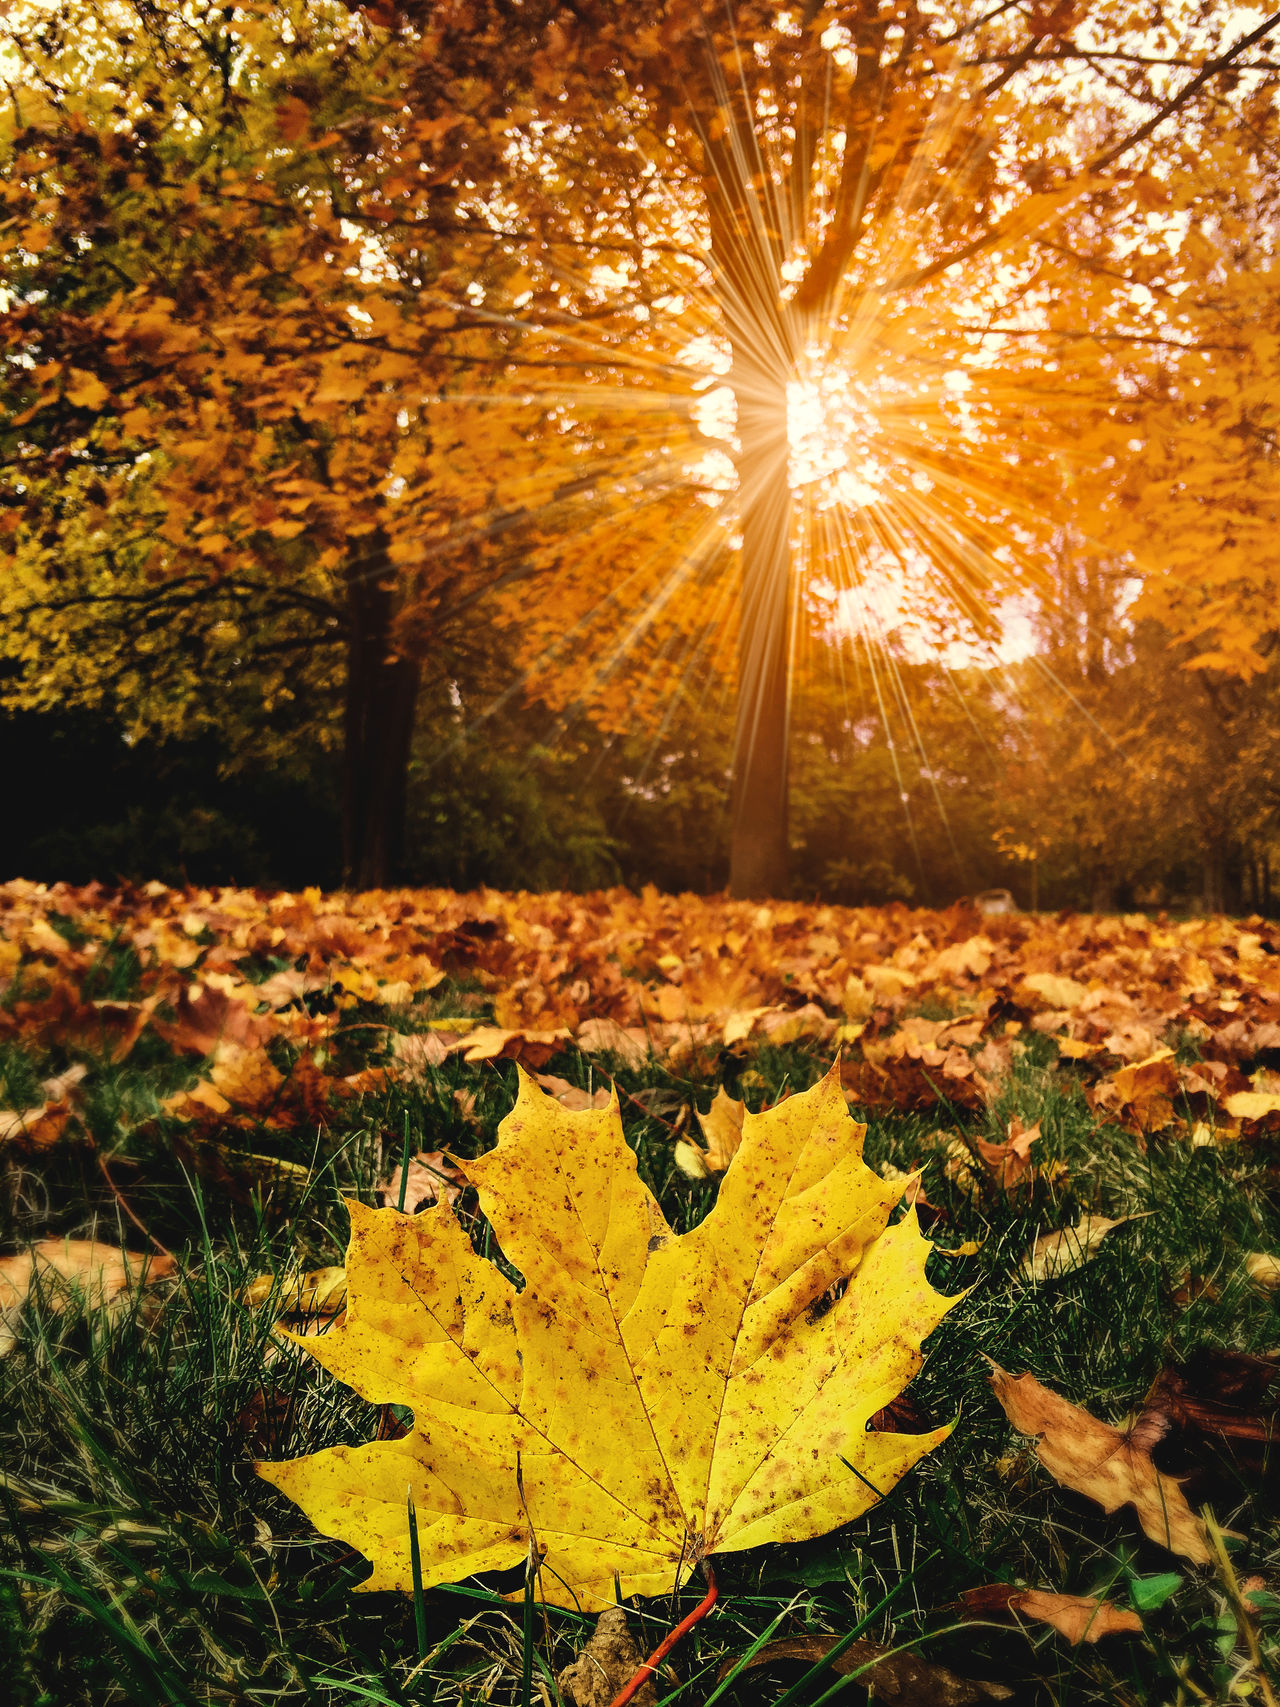 Autumn Autumn Autumn Autumn Collection Autumn Colors Beauty In Nature Color Colors Day Nature No People Outdoors Photo Photography Photooftheday Sunlight Sunset First Eyeem Photo